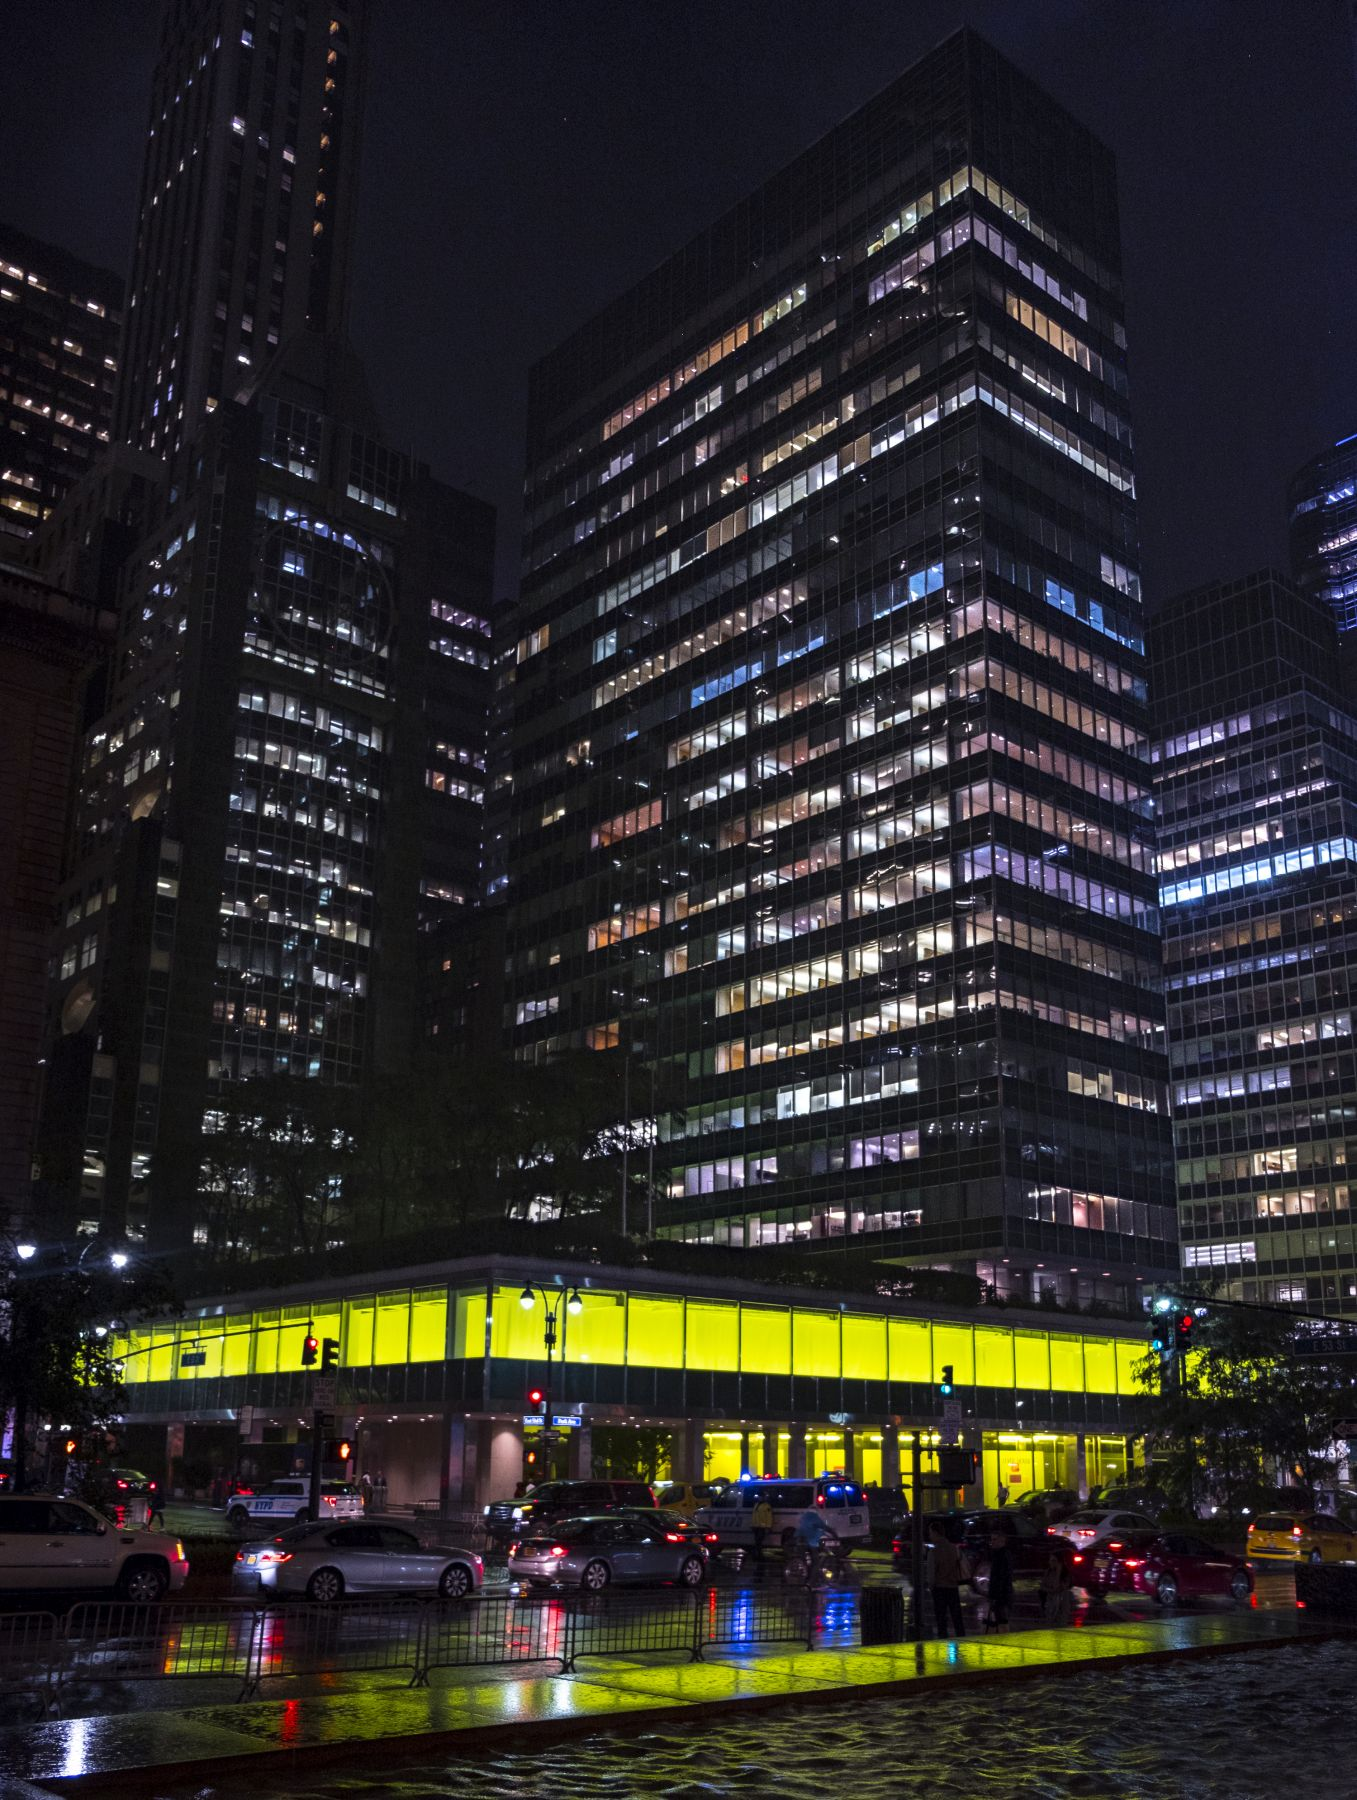 Installation view, New York, New York, Lever House, New York, 2018